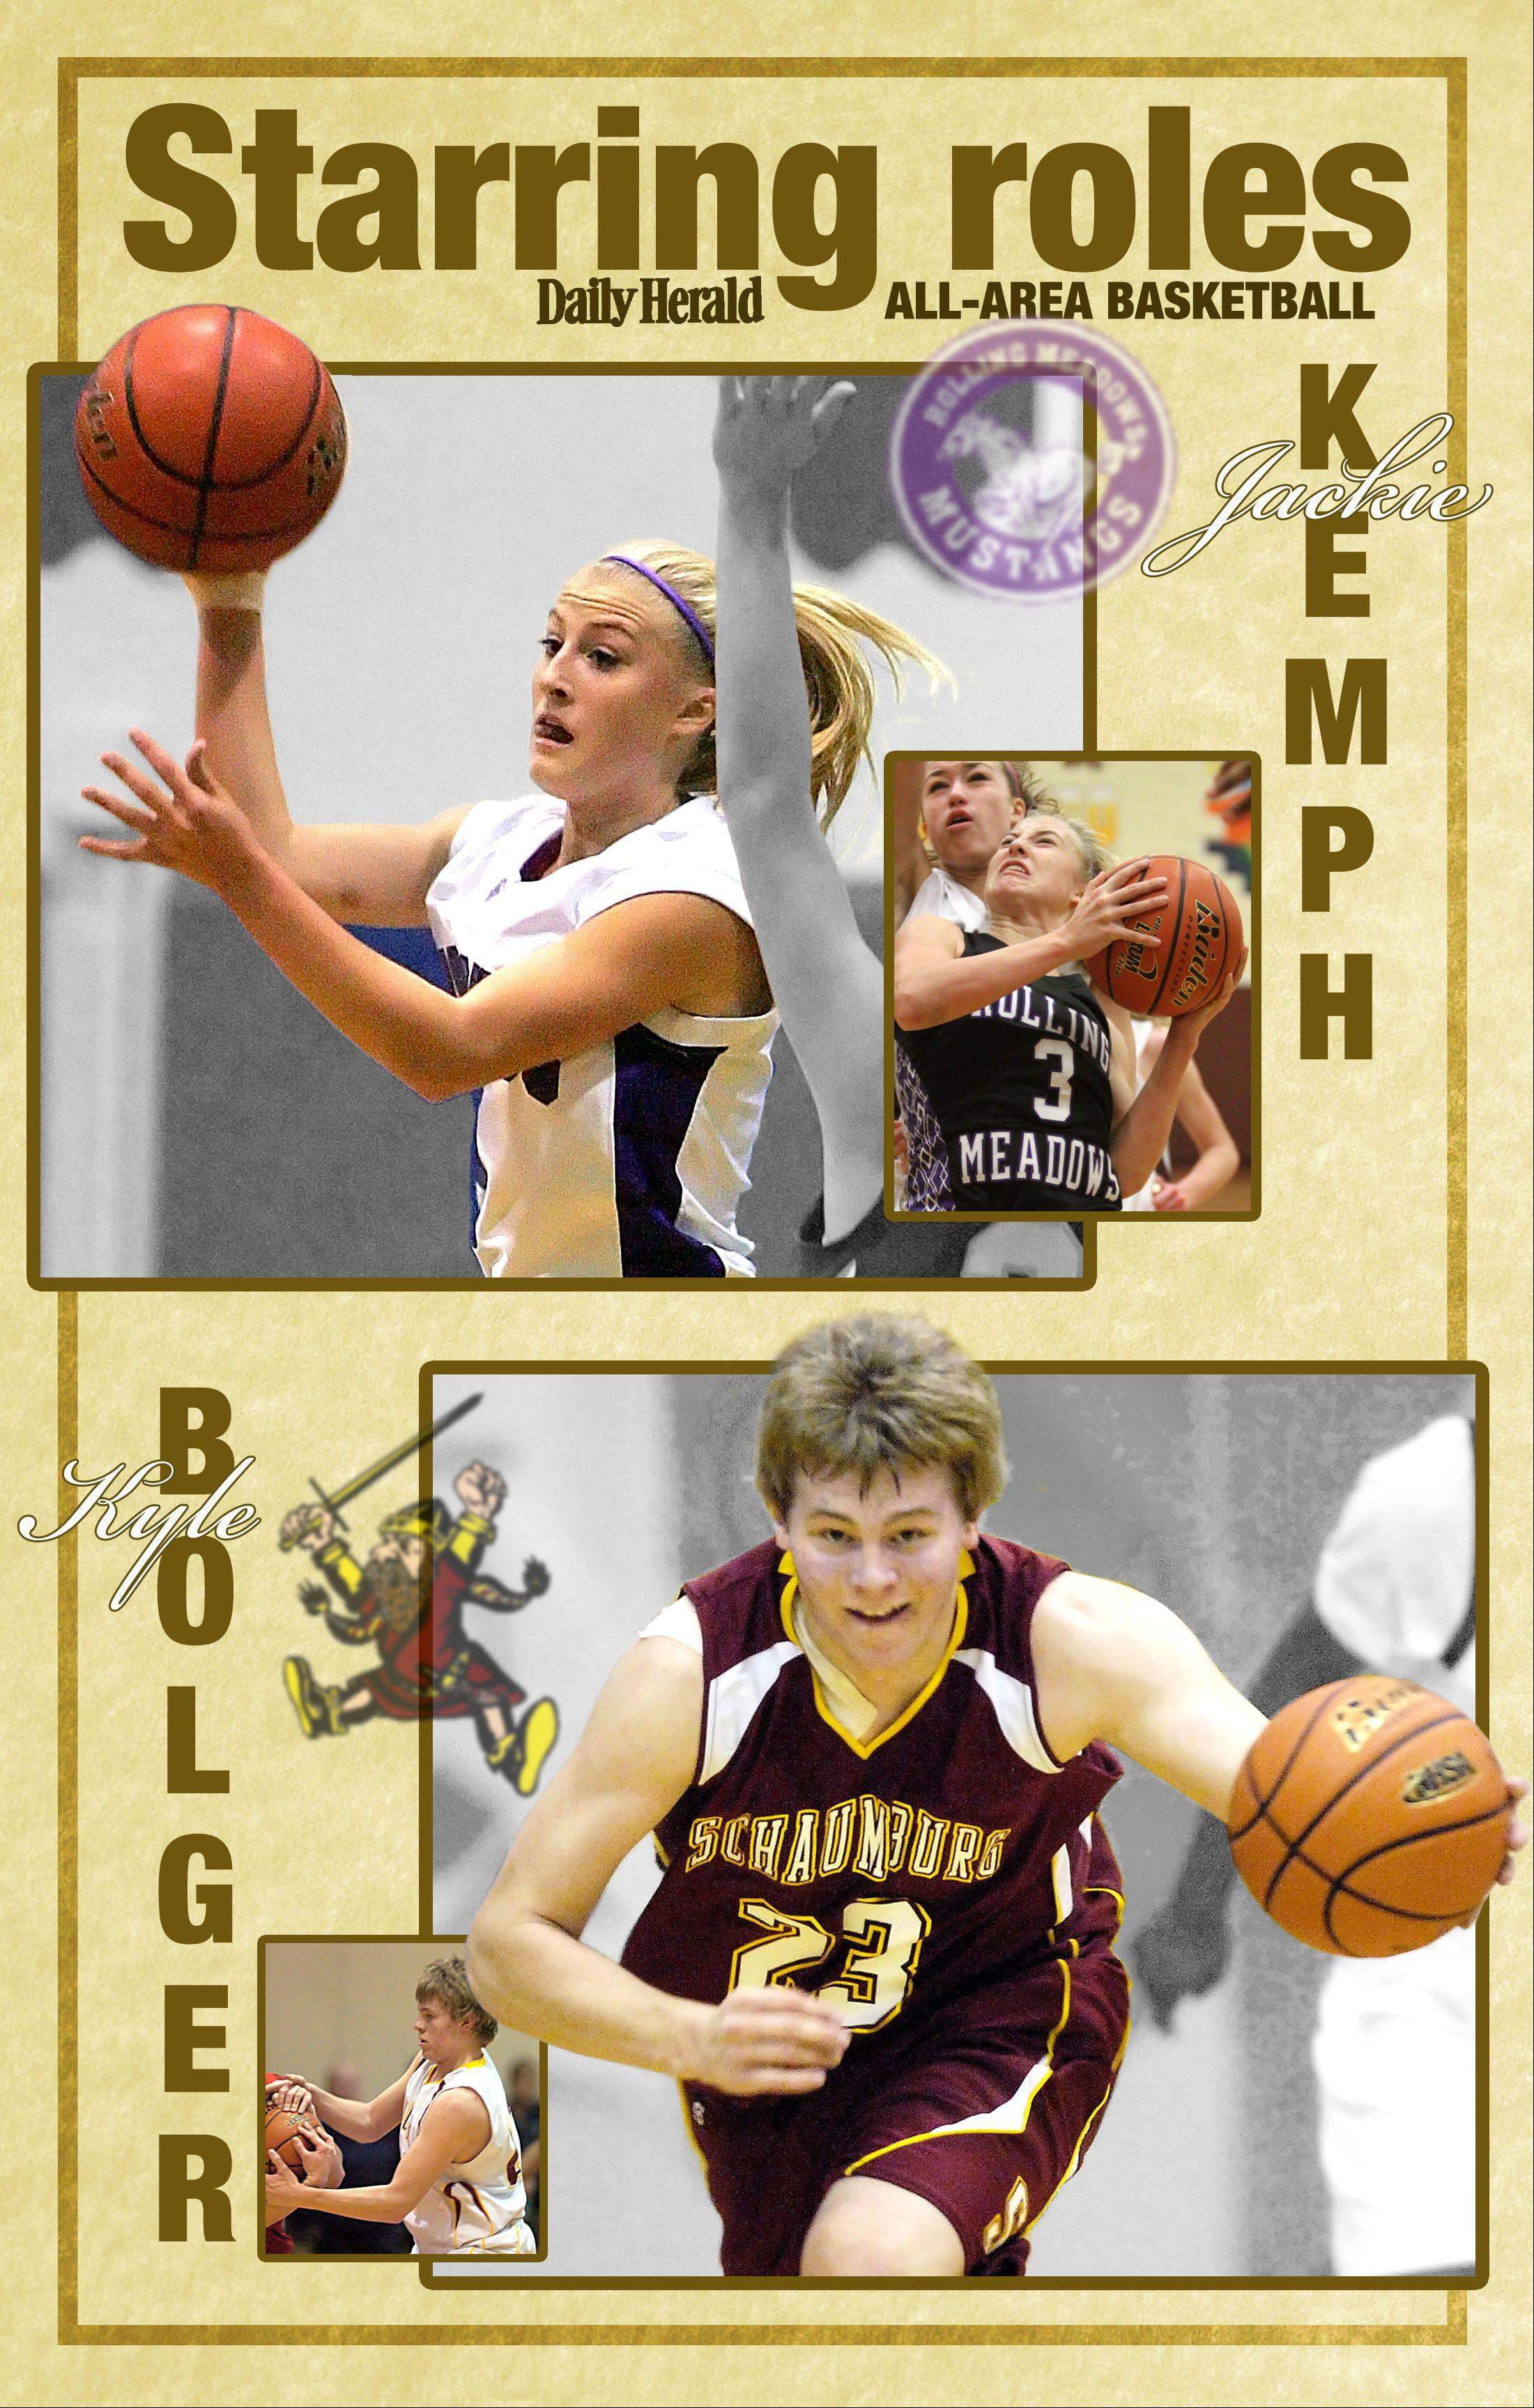 All-area Daily Herald basketball players in the Northwest suburbs are Jackie Kemph of Rolling Meadows and Kyle Bolger of Schaumburg.